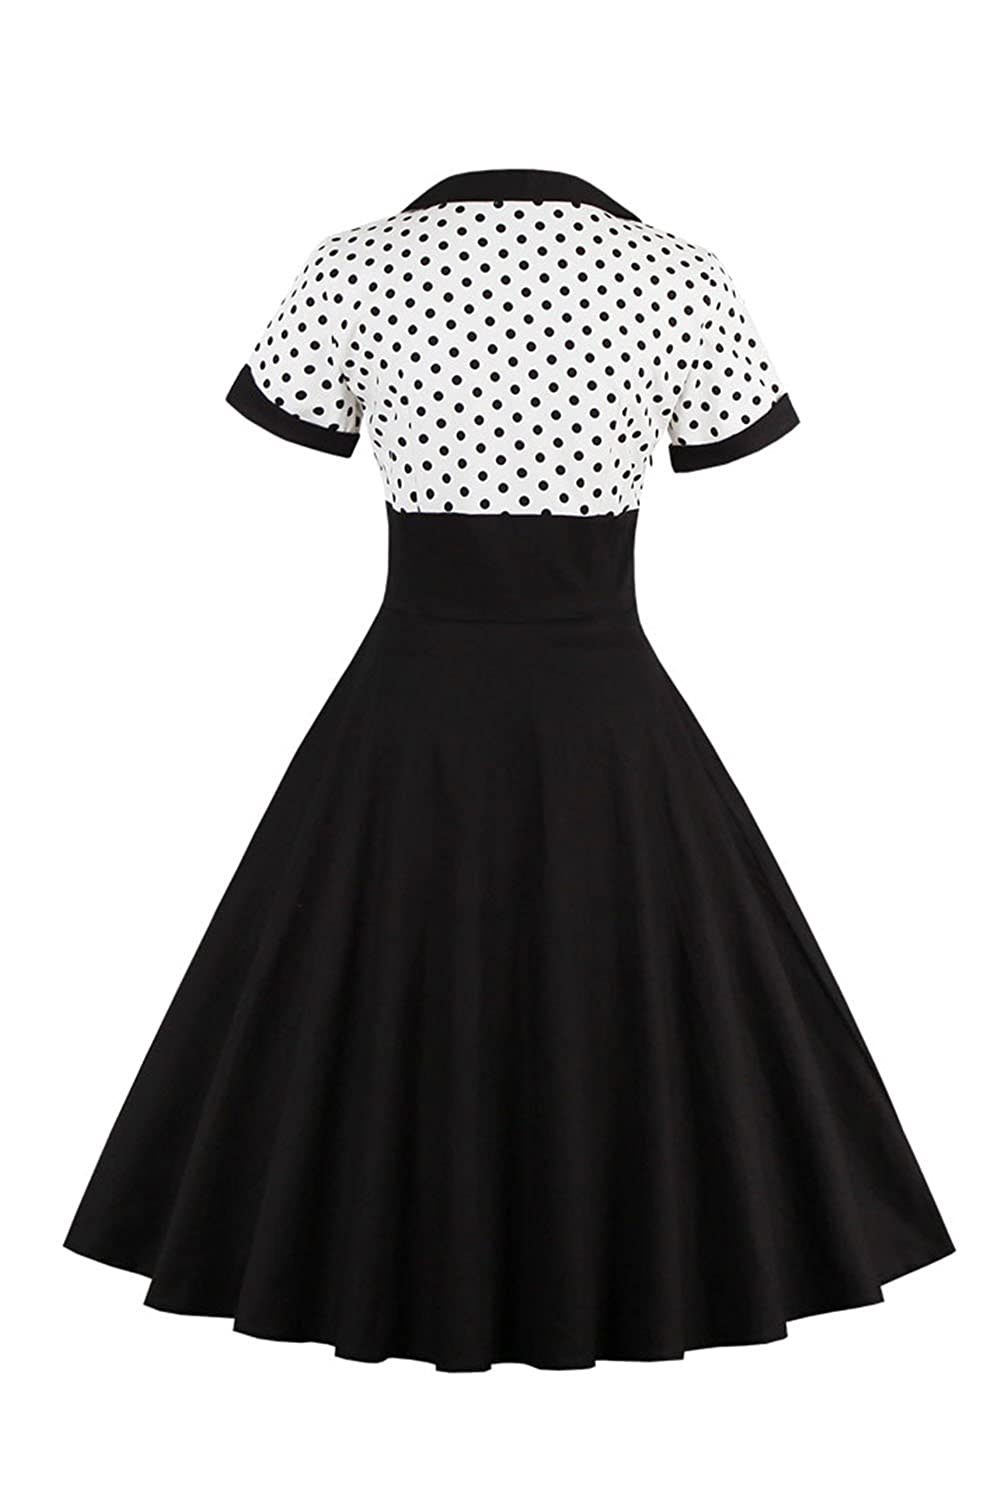 96f9257f1c83 YACUN Women's Vintage 1940s Polka Dot Fit And Flare Midi Swing Party Dress:  Amazon.co.uk: Clothing